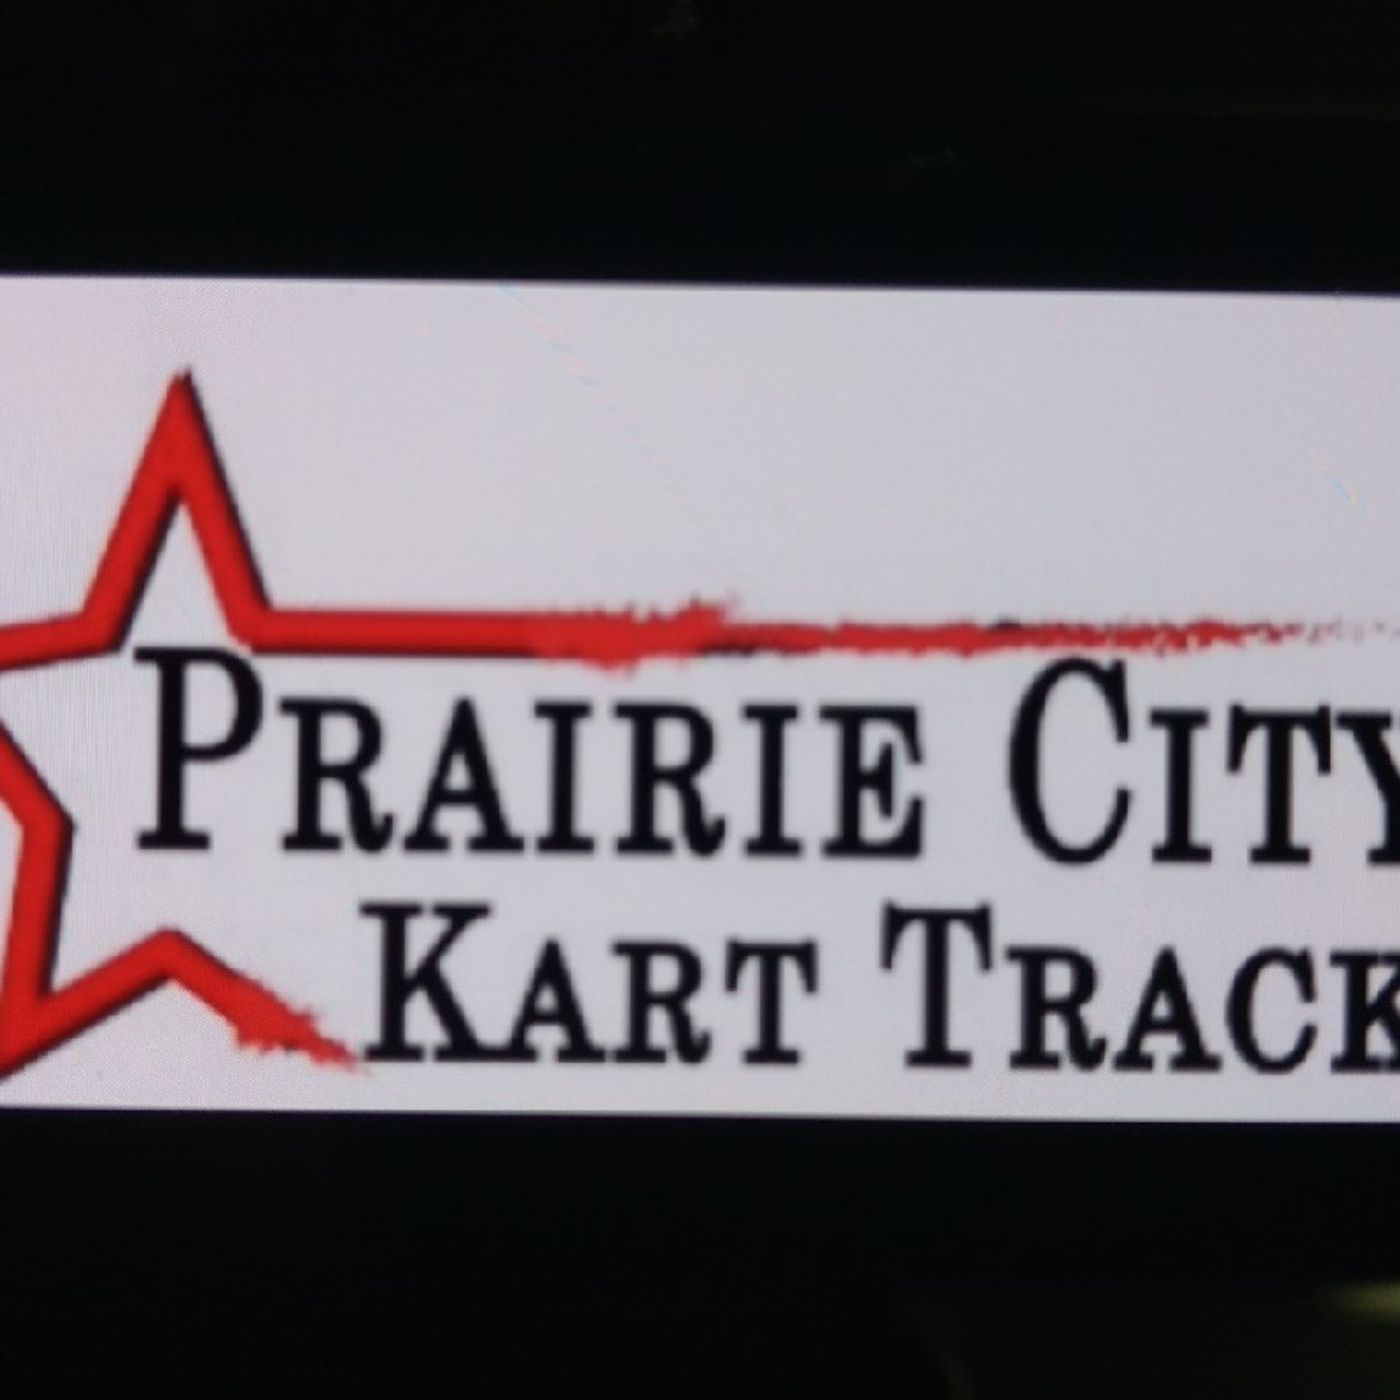 Episode 106 - Donald Durbin Of Prairie City Kart Track